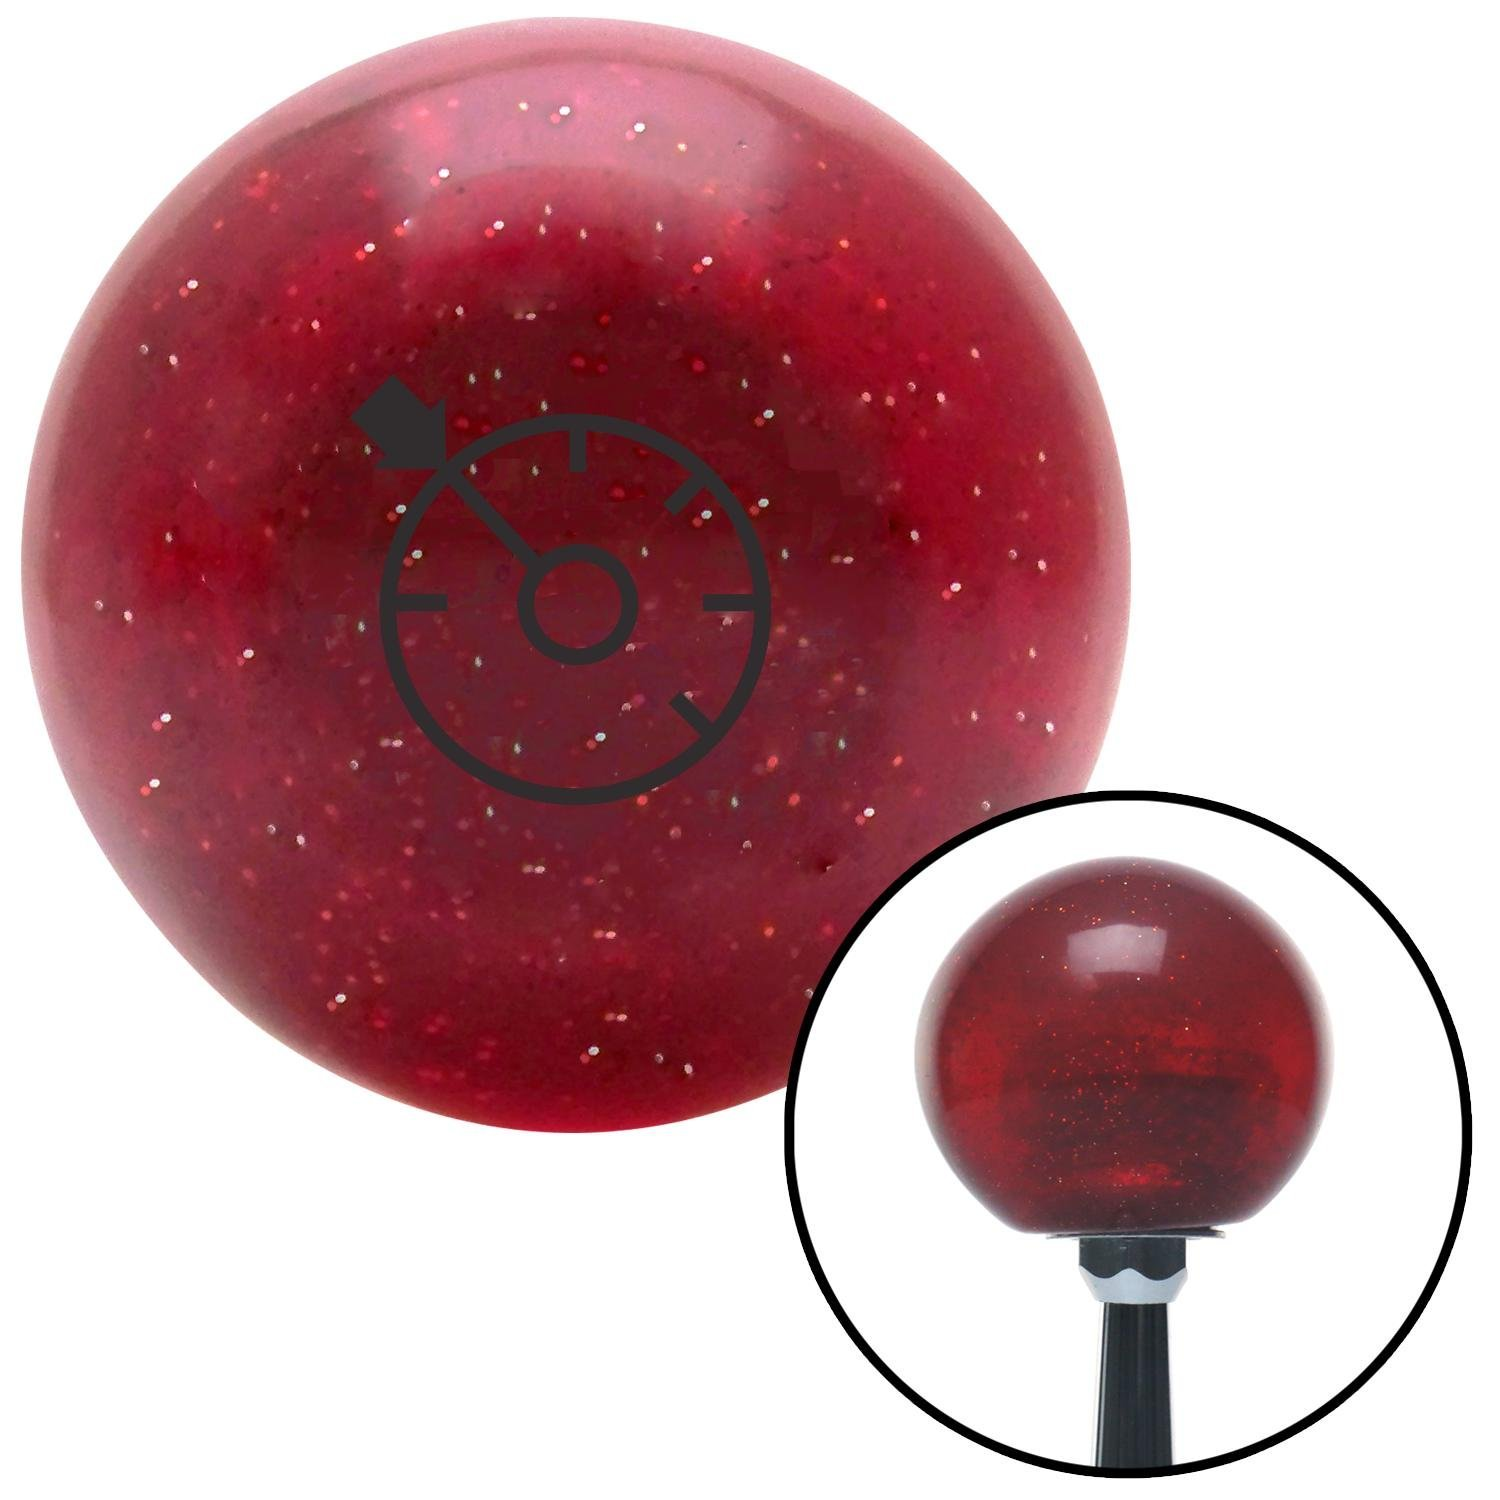 Black Automotive Cruise Control American Shifter 47338 Red Metal Flake Shift Knob with 16mm x 1.5 Insert